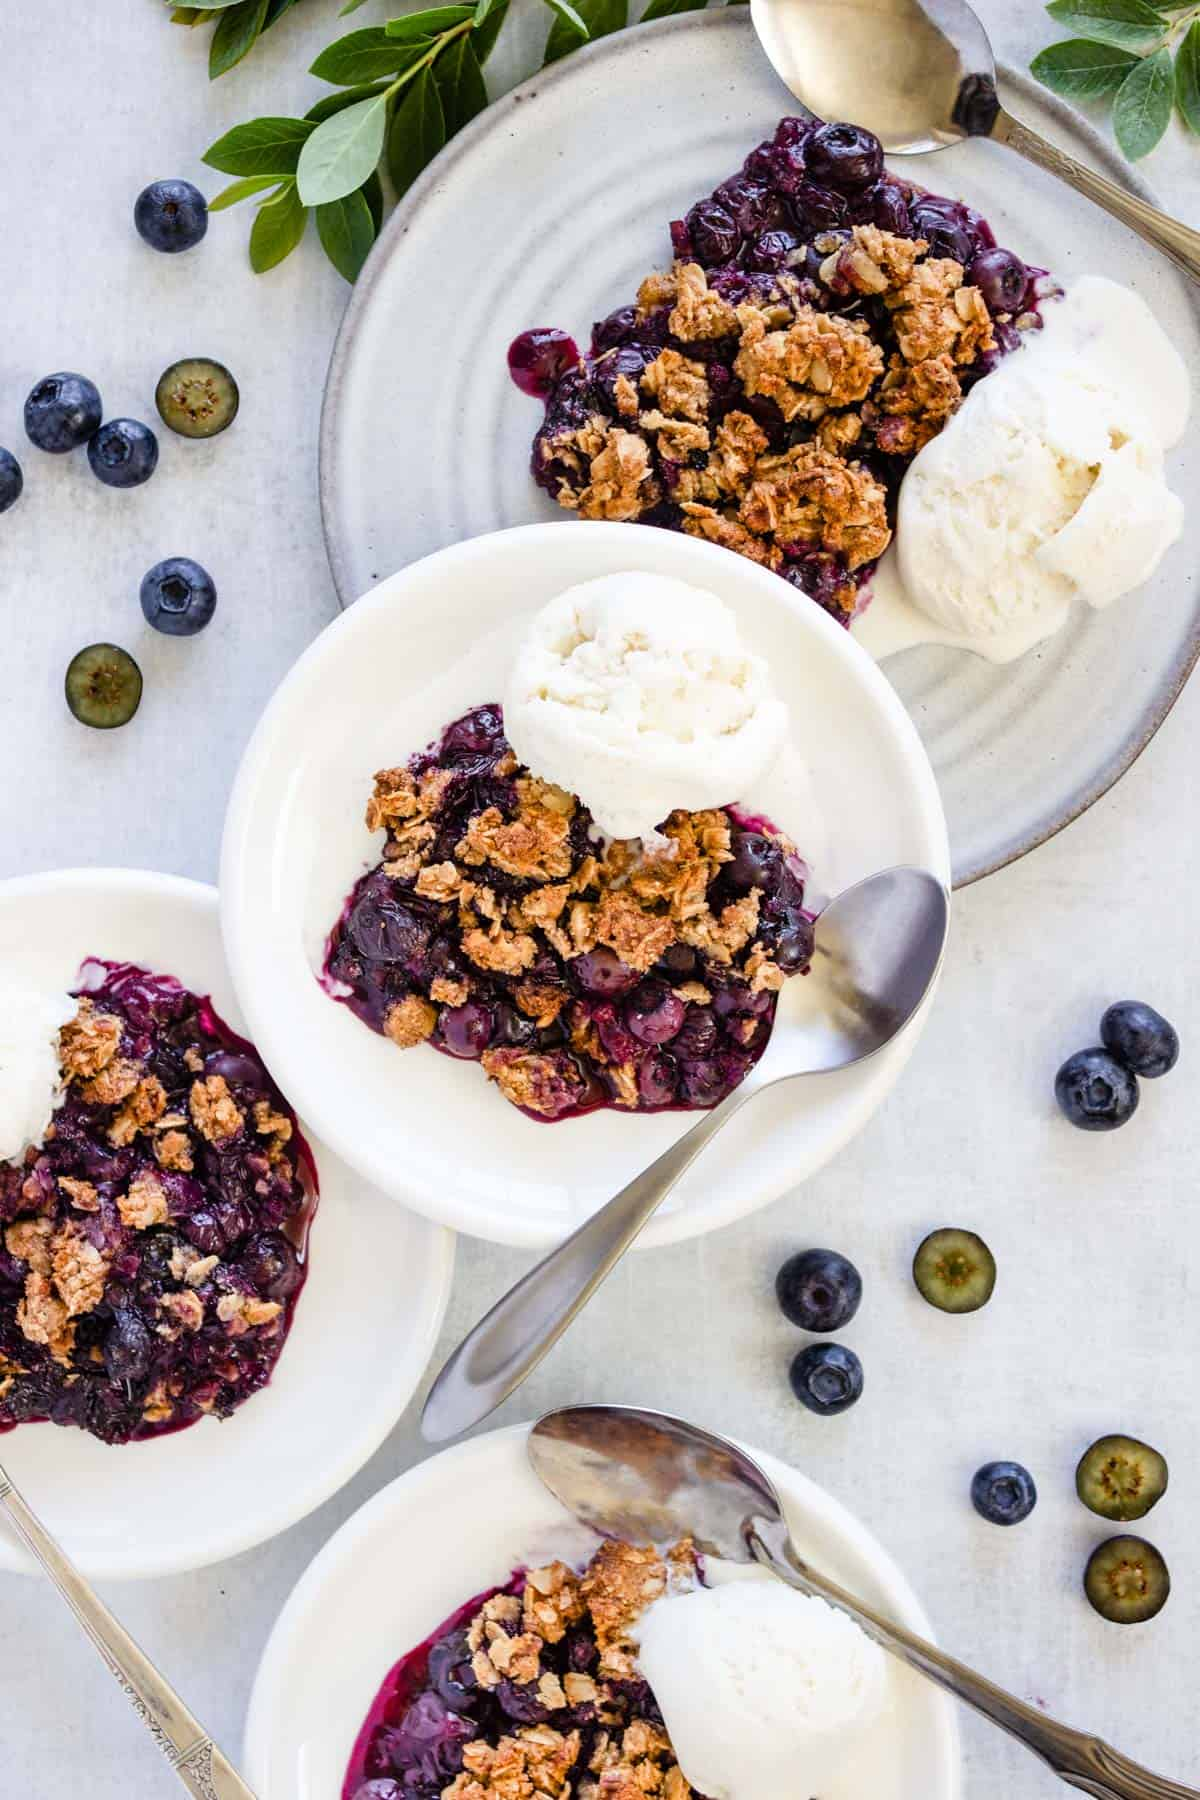 Four plates with blueberry crisp are topped with vanilla ice cream and ready to be served.